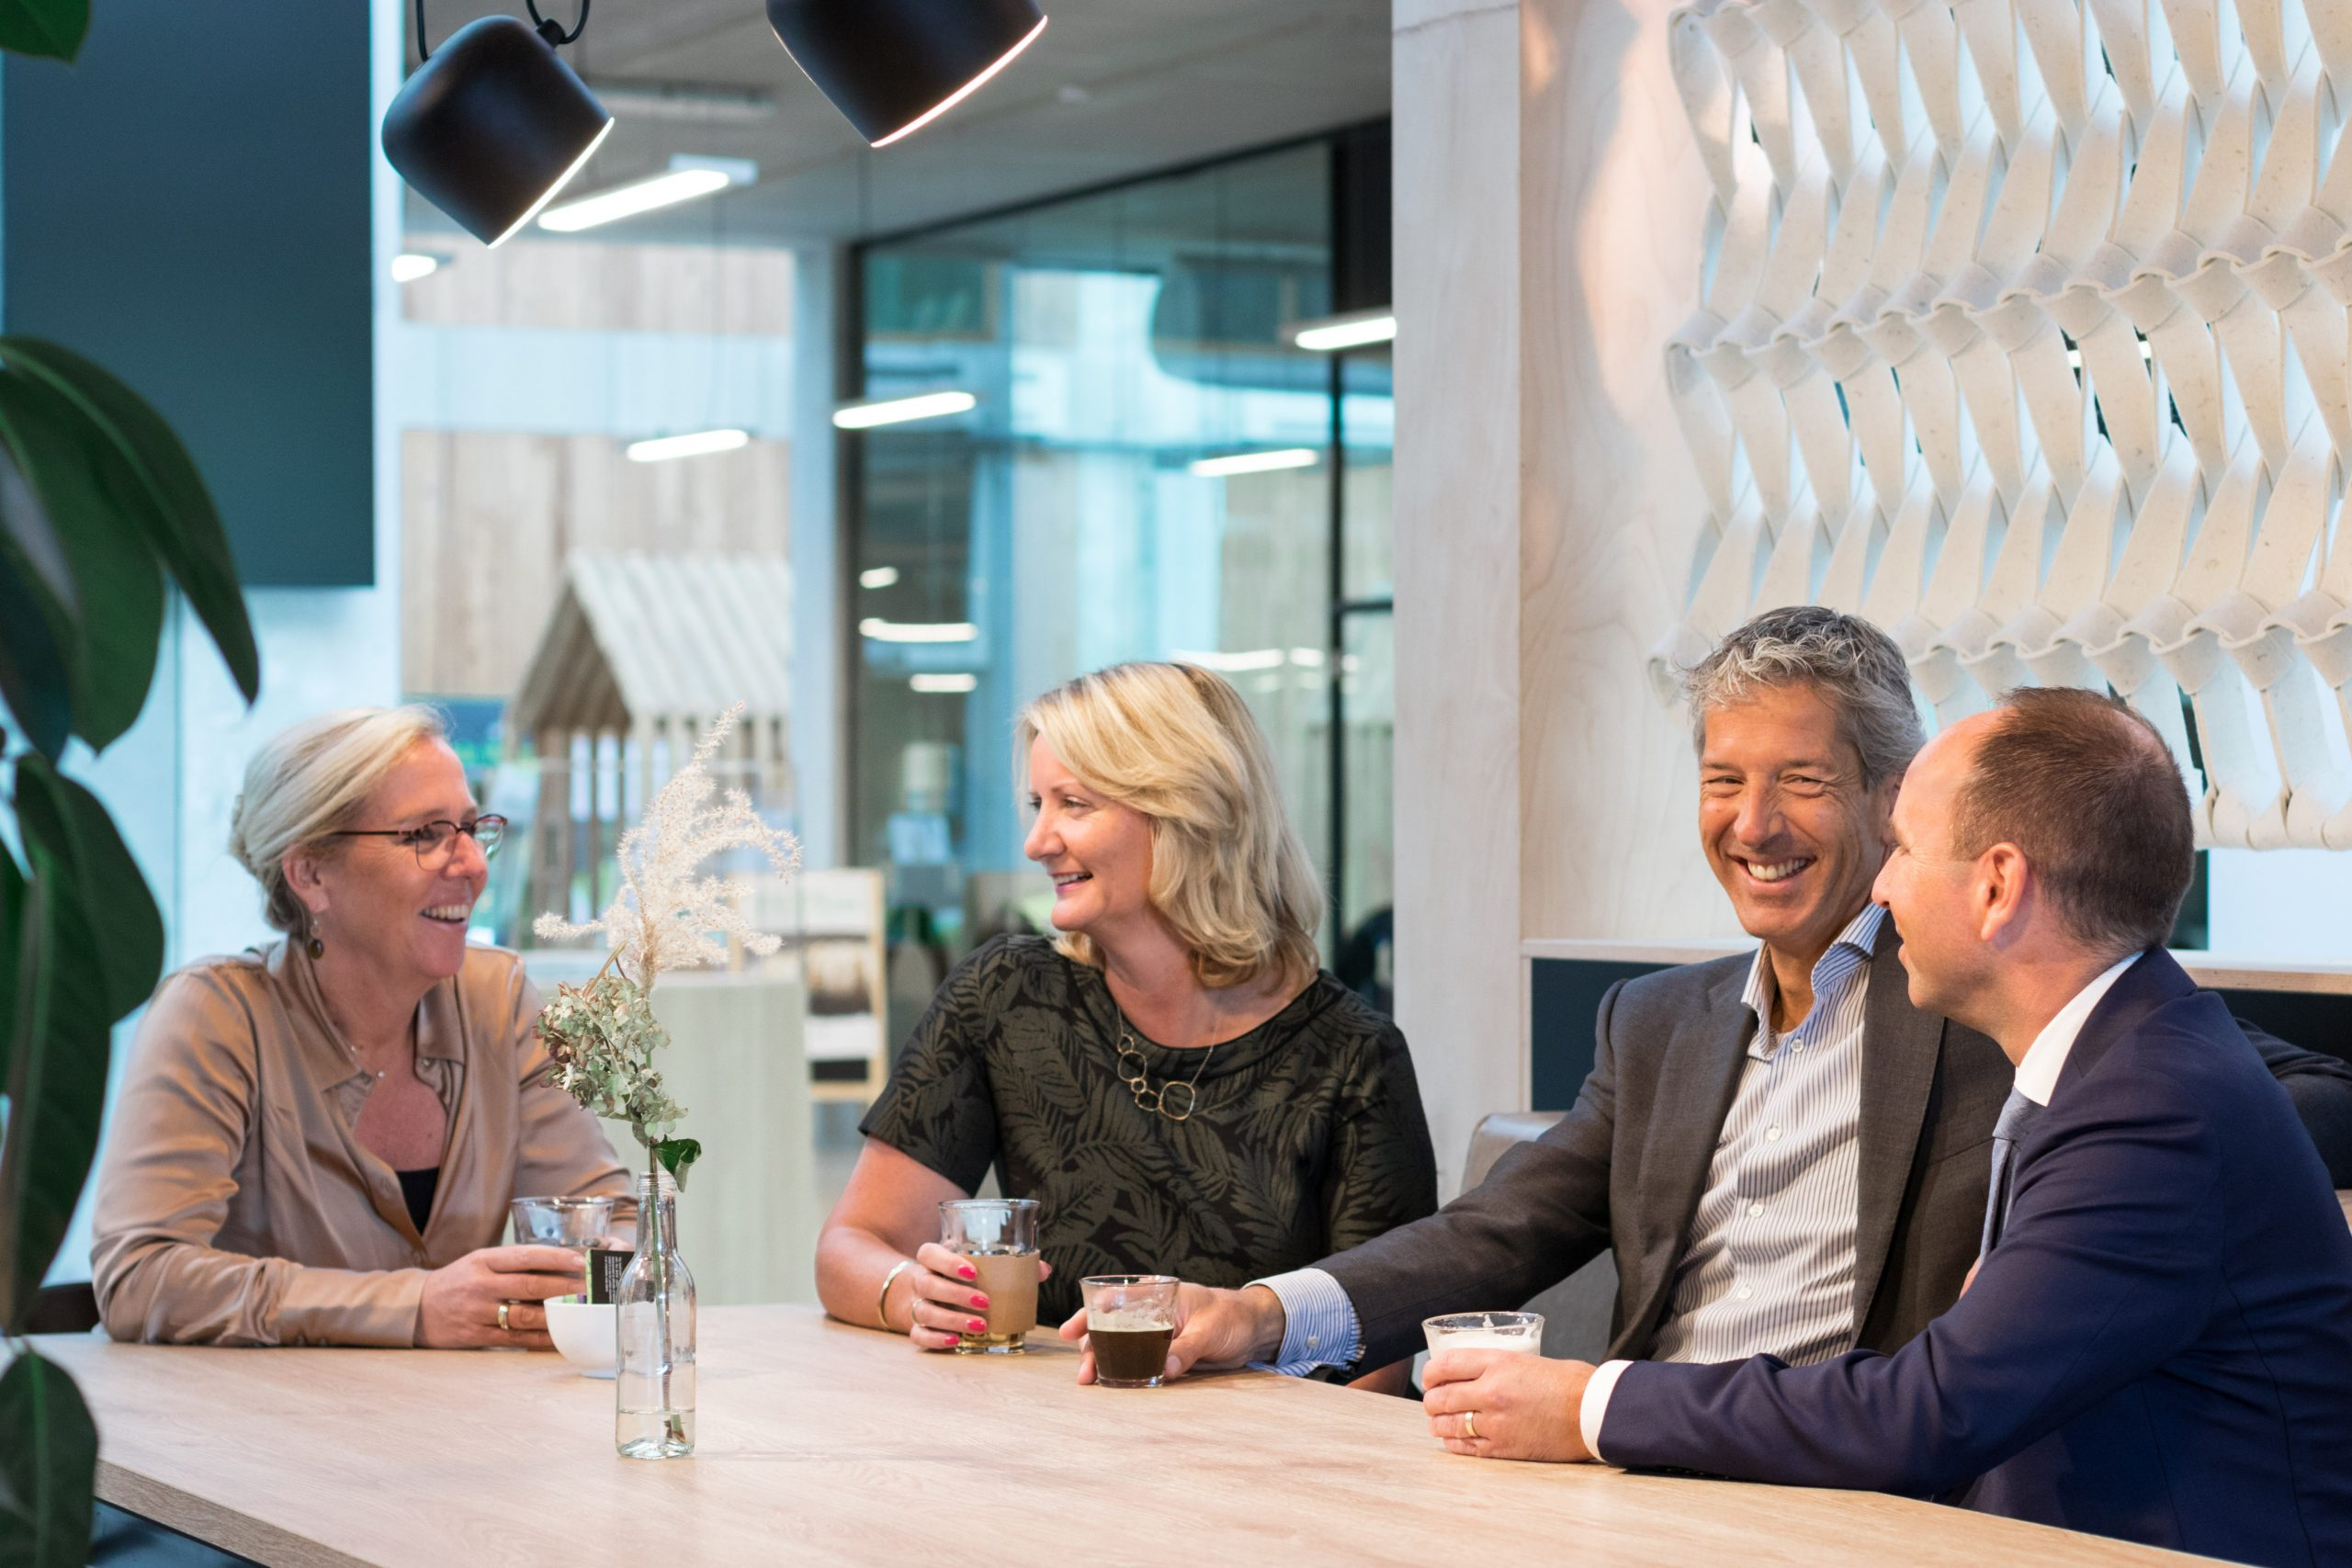 Boels Zanders and General Counsel Netherlands conclude partnership